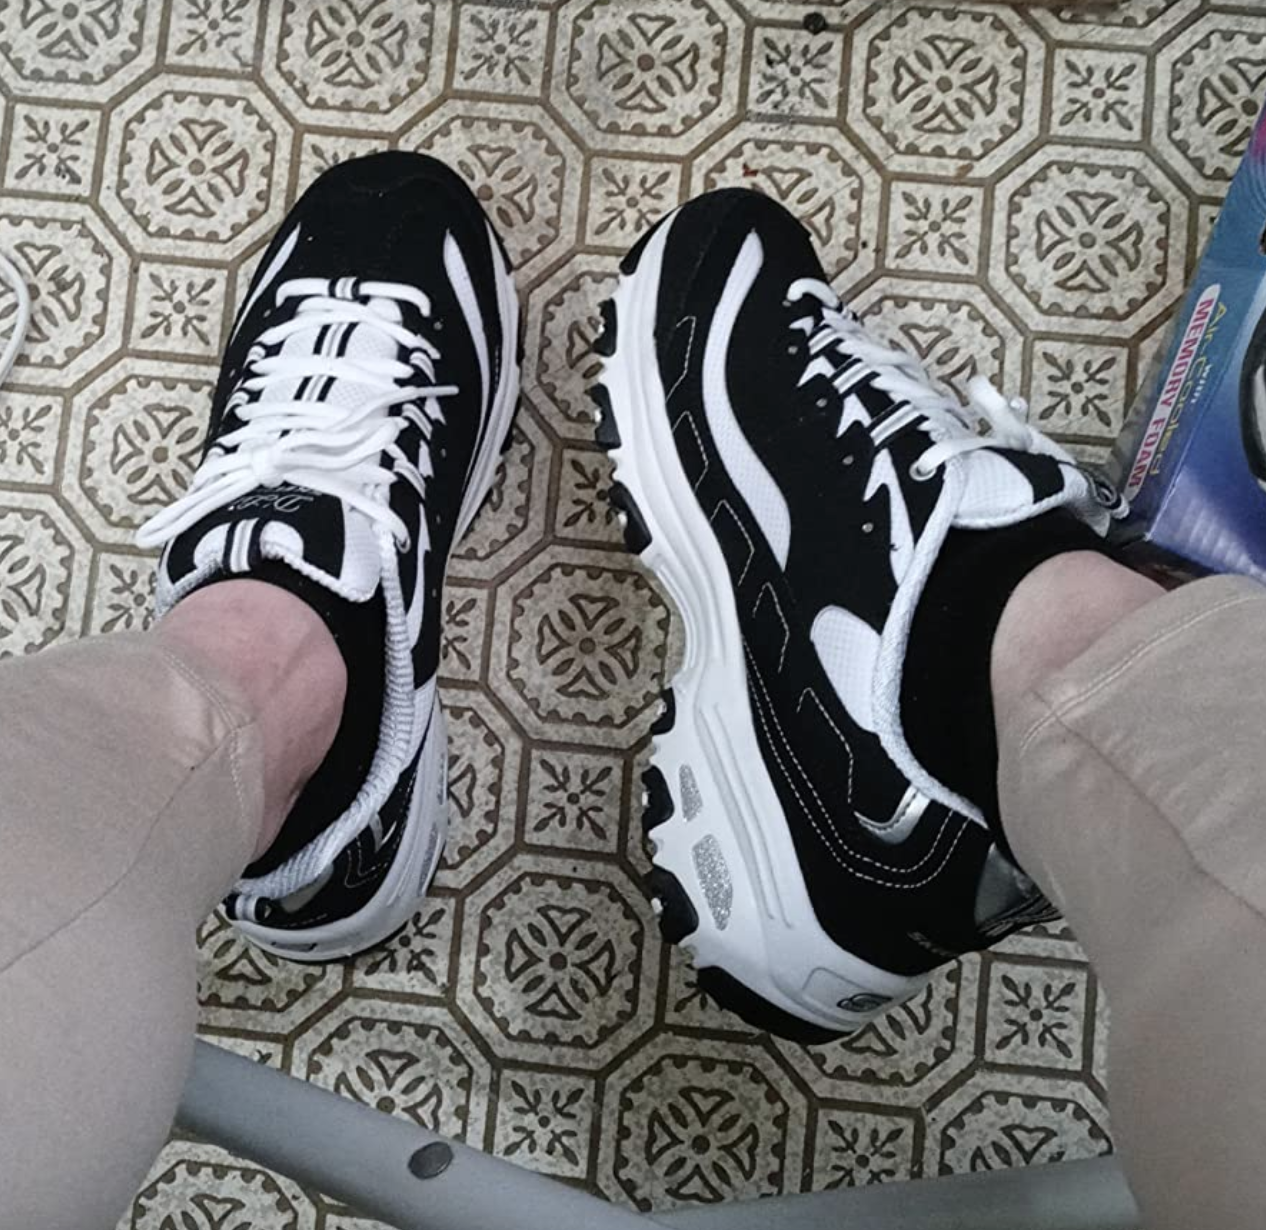 reviewer wearing the sneakers